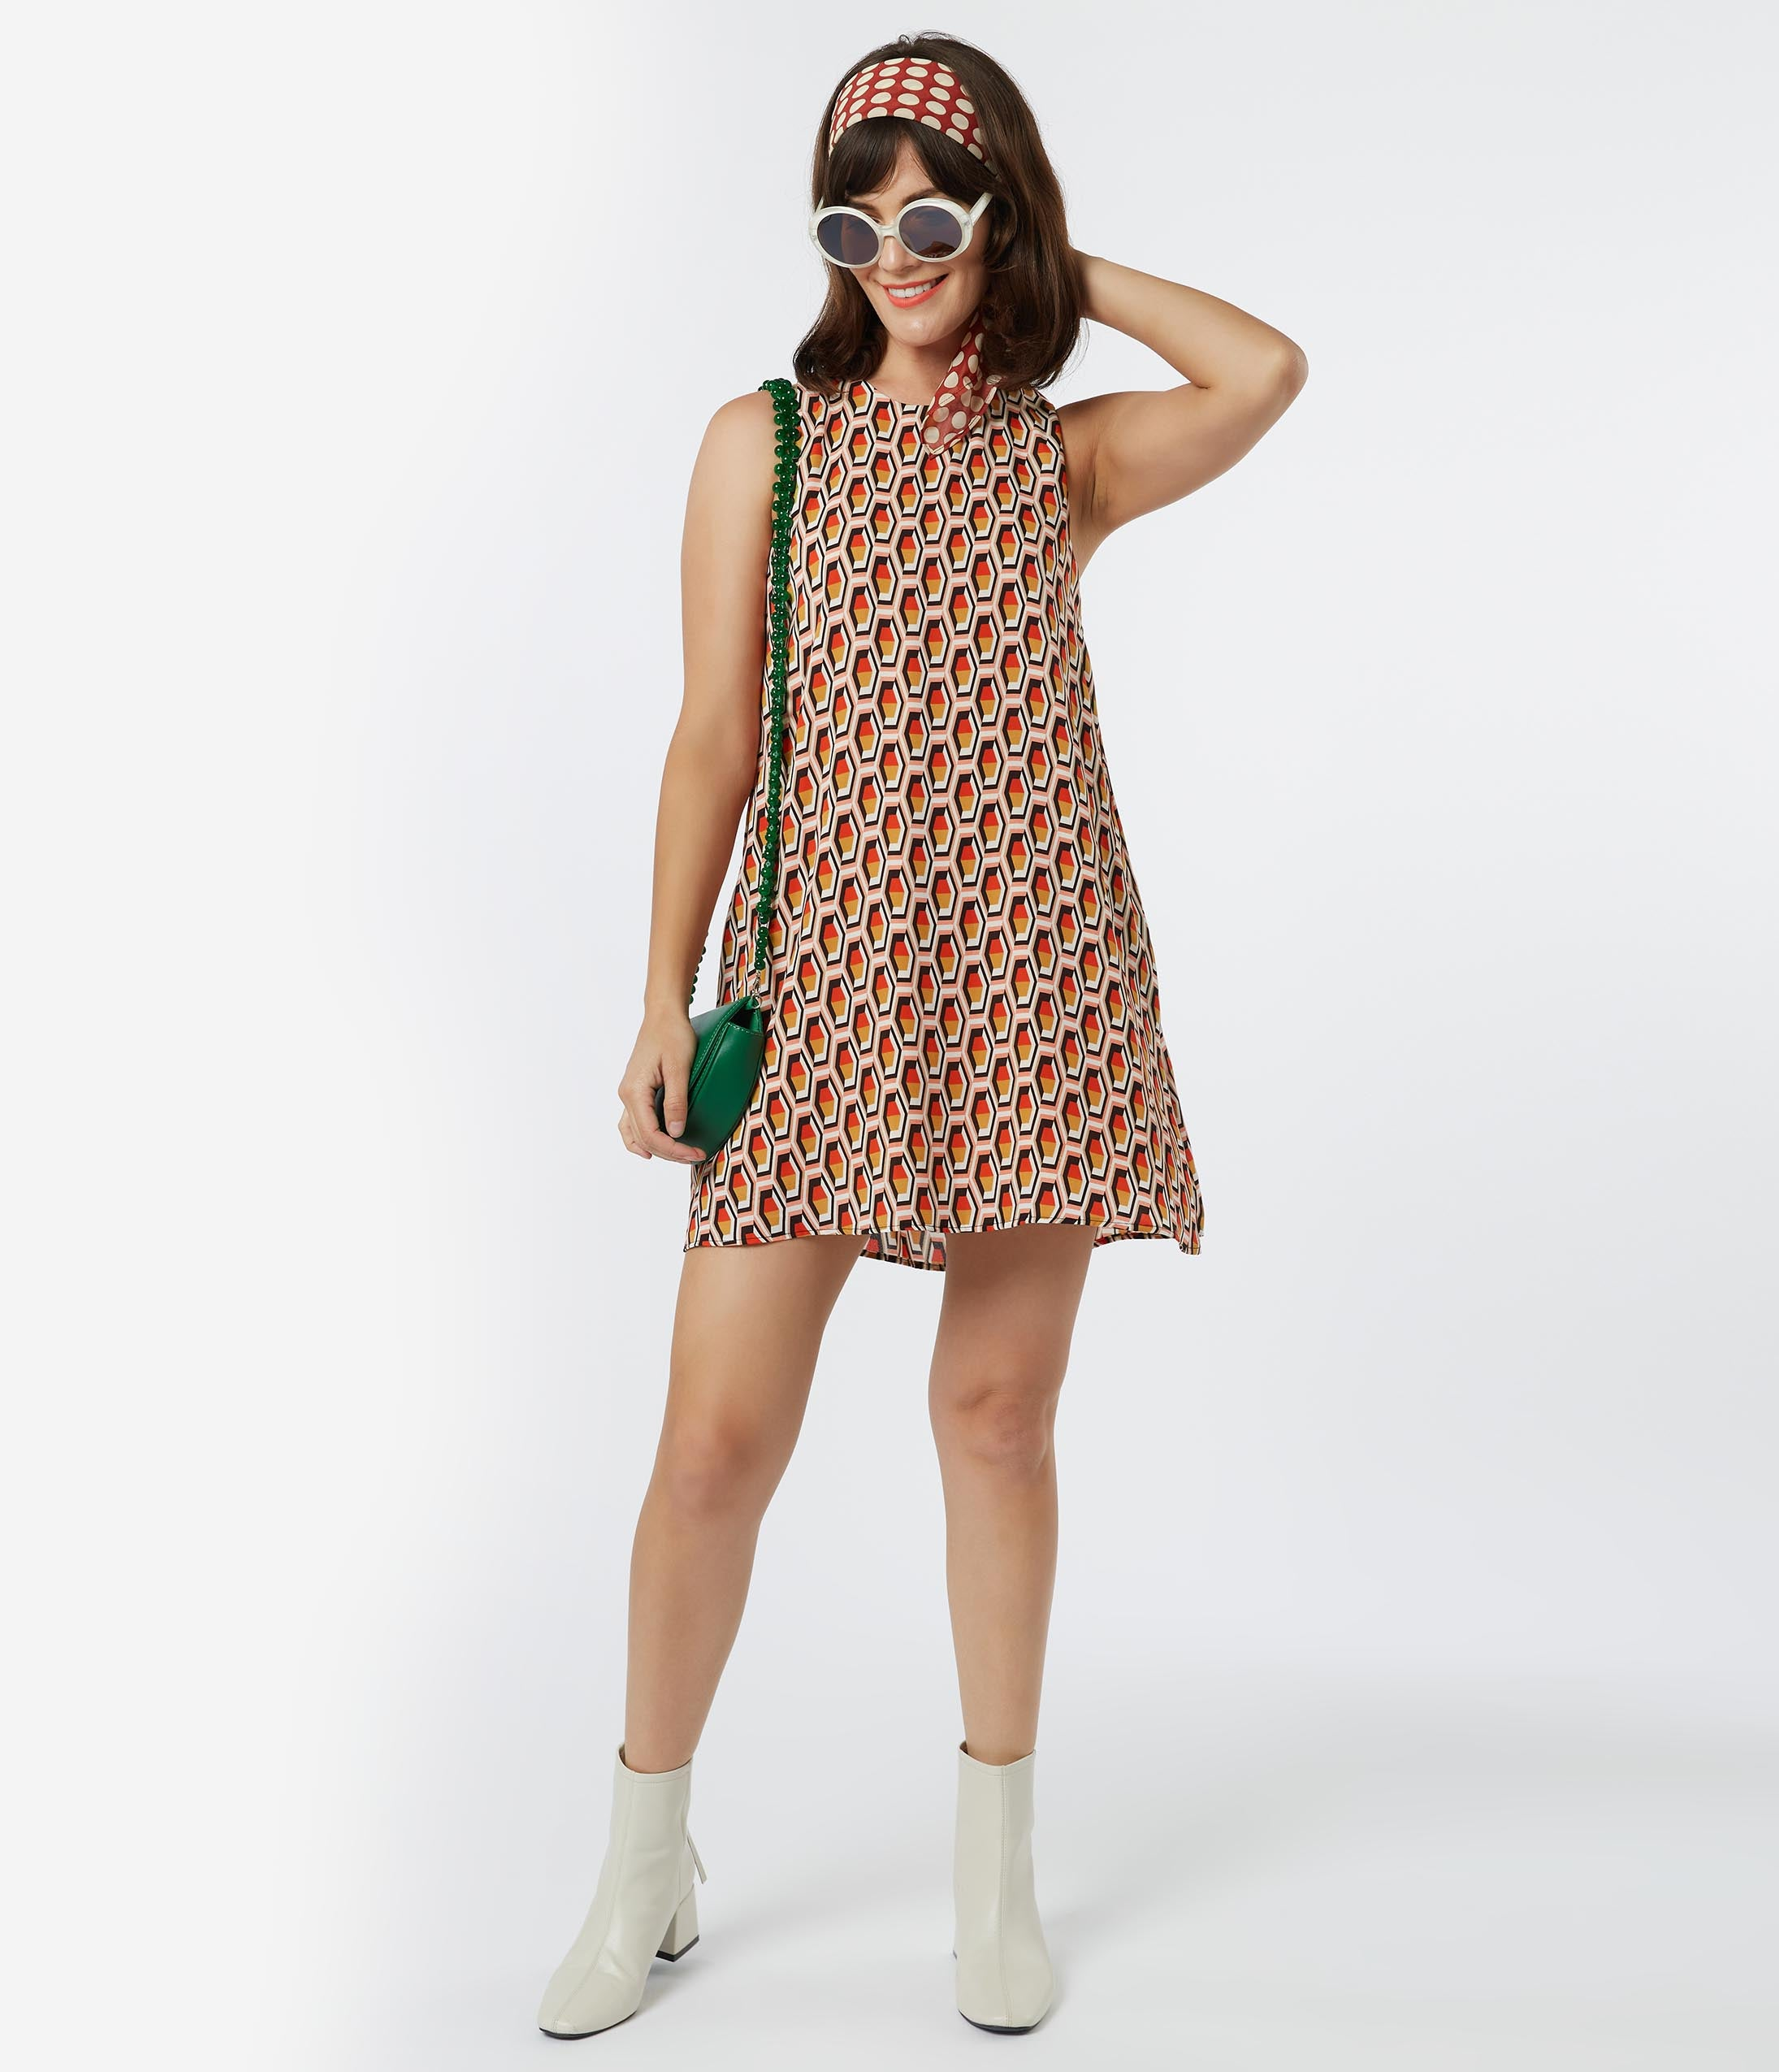 Vintage Style Dresses | Vintage Inspired Dresses 1960S Style Honeycomb Print Shift Dress $88.00 AT vintagedancer.com